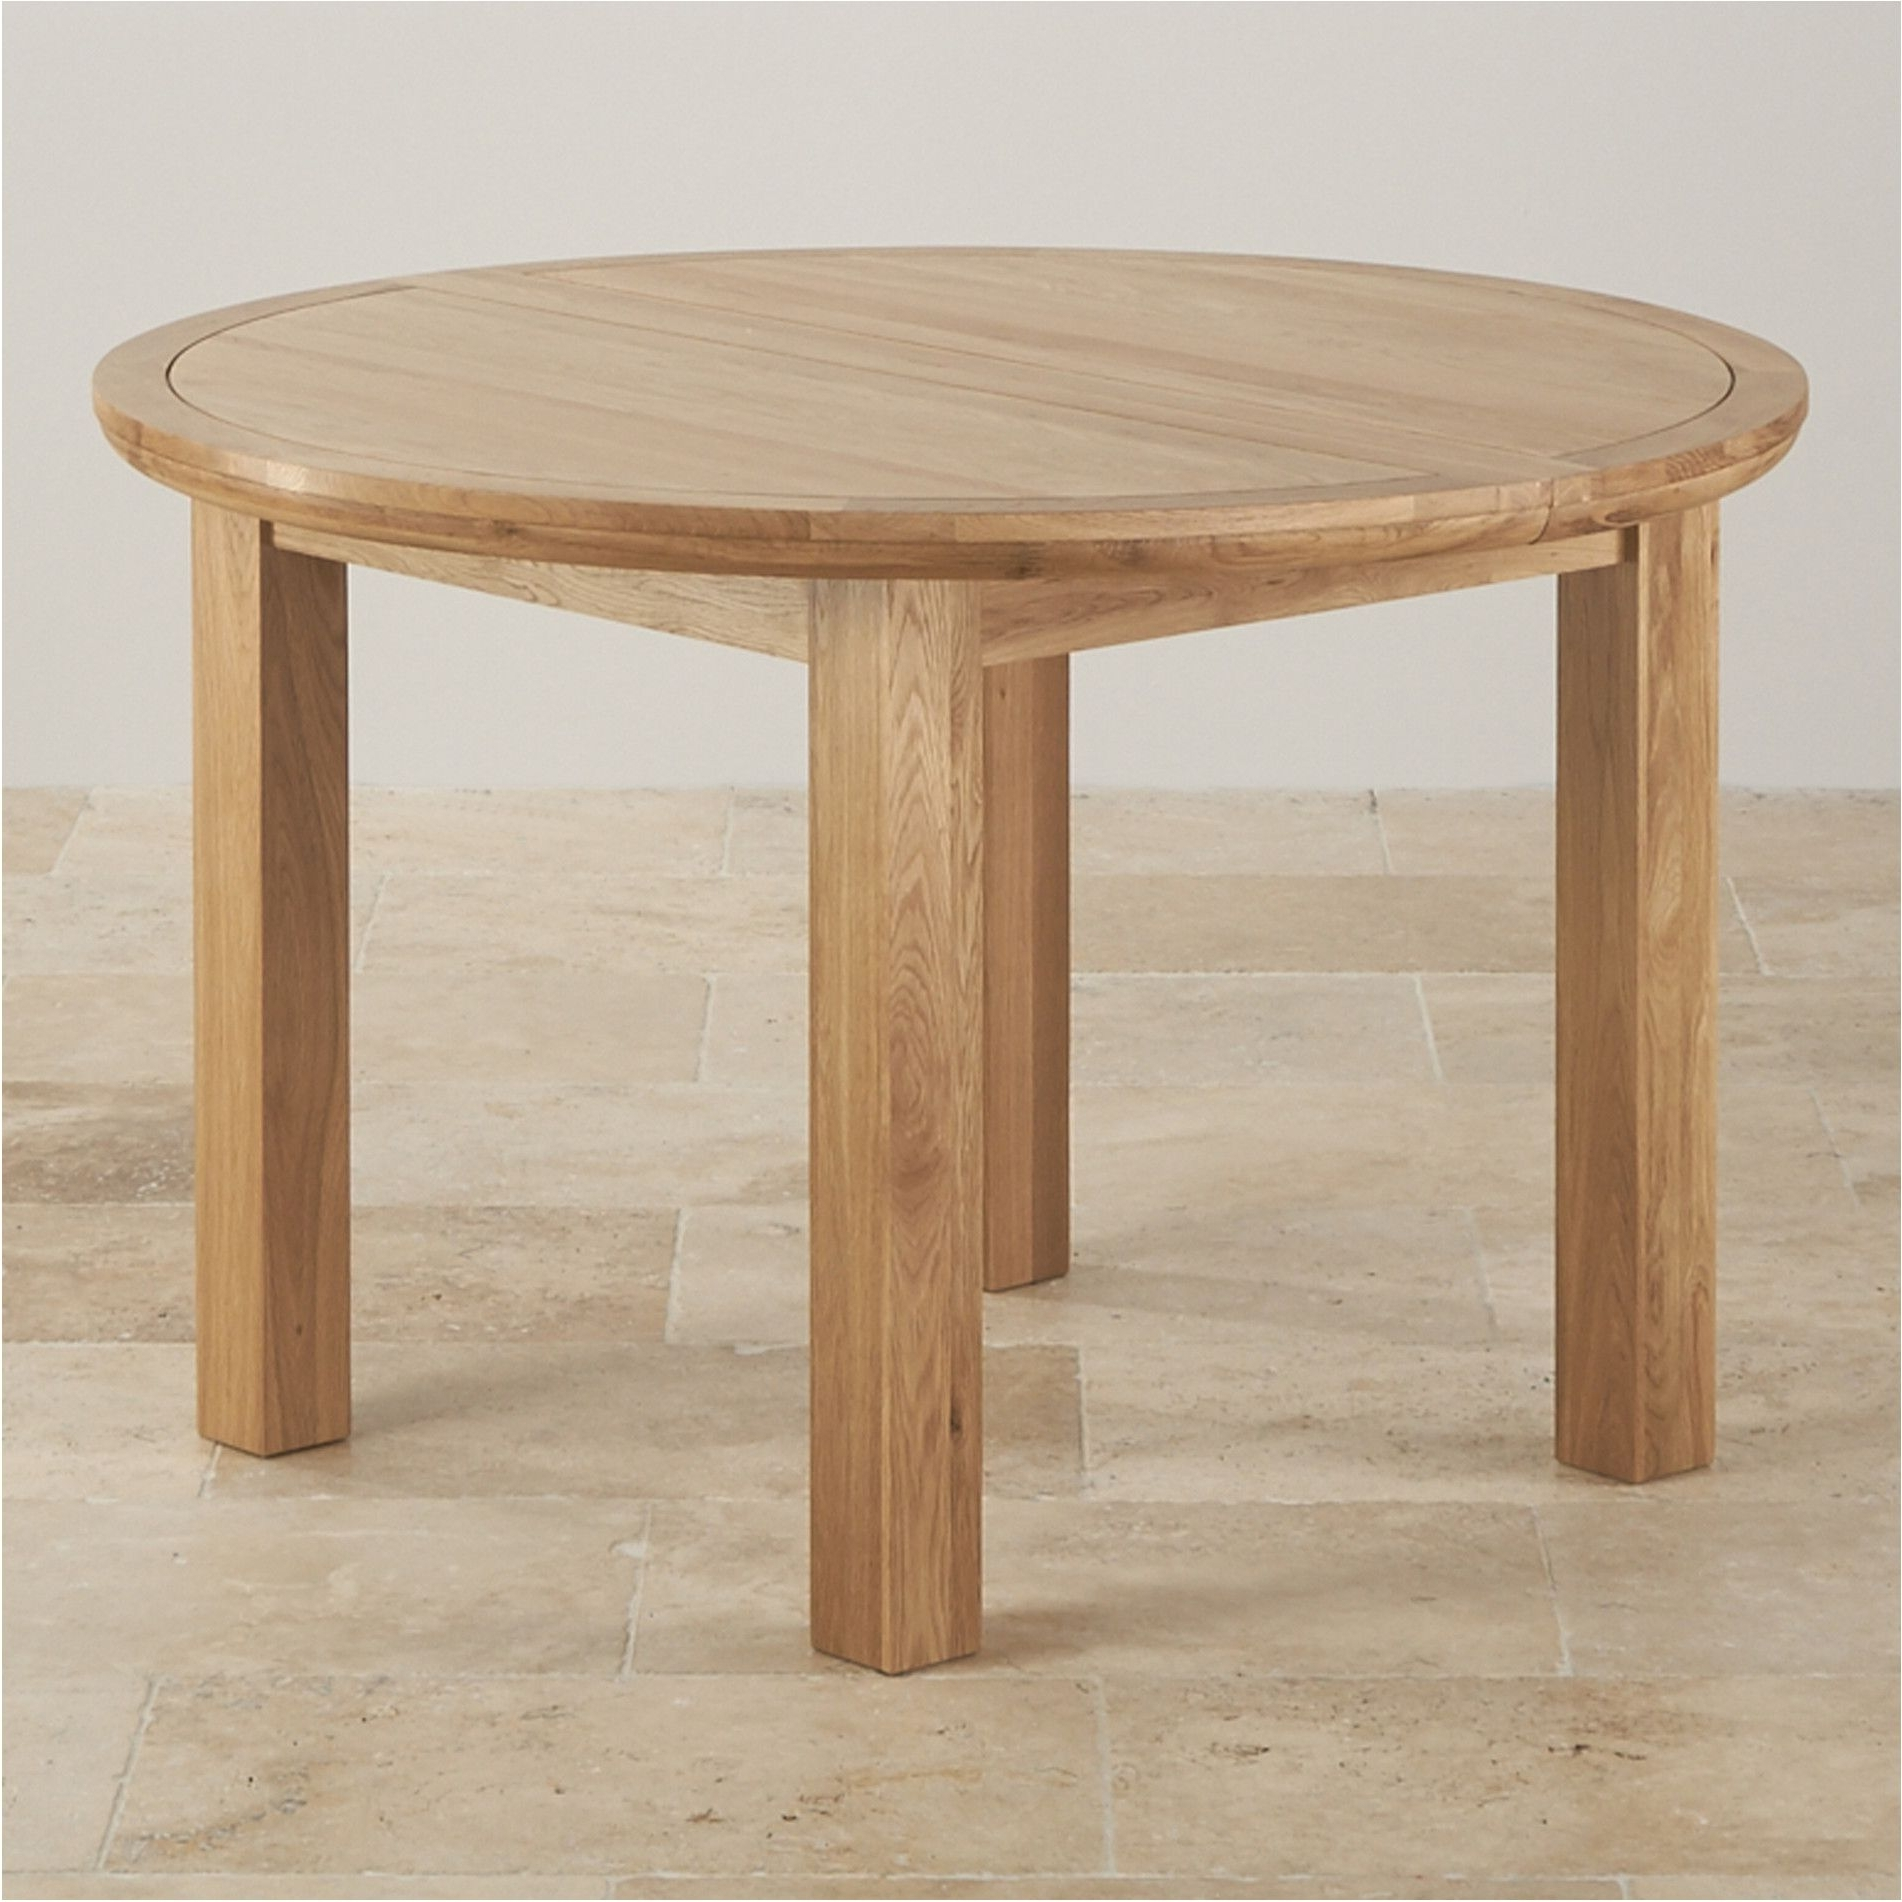 Widely Used Marvelous Stunning Round Oak Dining Tables Pertaining To House With Round Oak Dining Tables And Chairs (View 14 of 25)